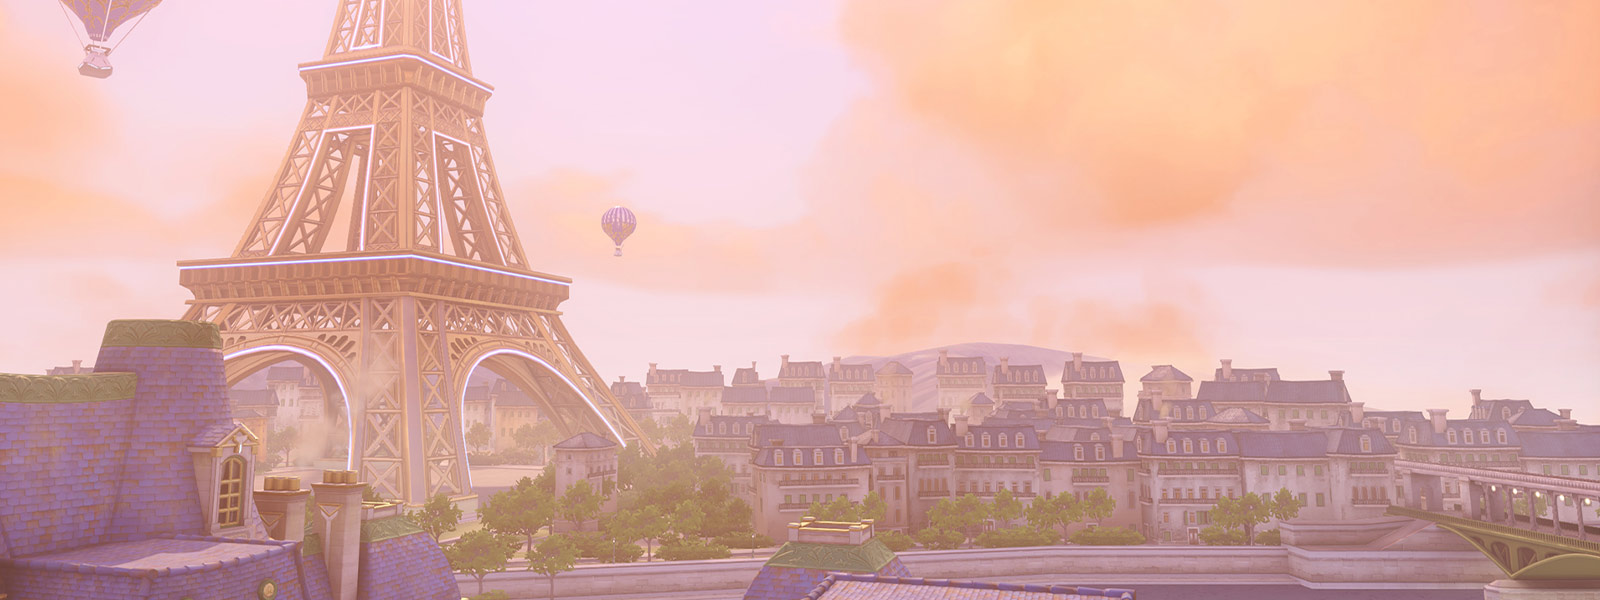 Paris backdrop with the Eiffel tower and hot air balloons